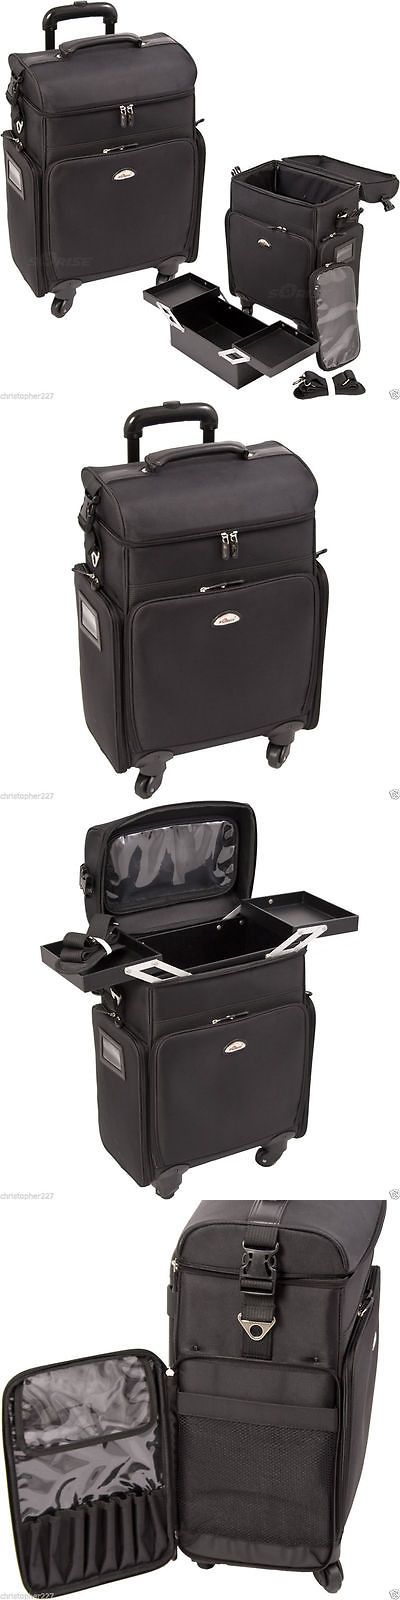 Rolling Makeup Cases: Salon Trolley Bag On Wheels Rolling Black Supply Makeup Hairstylist Case Laptop -> BUY IT NOW ONLY: $149.99 on eBay!